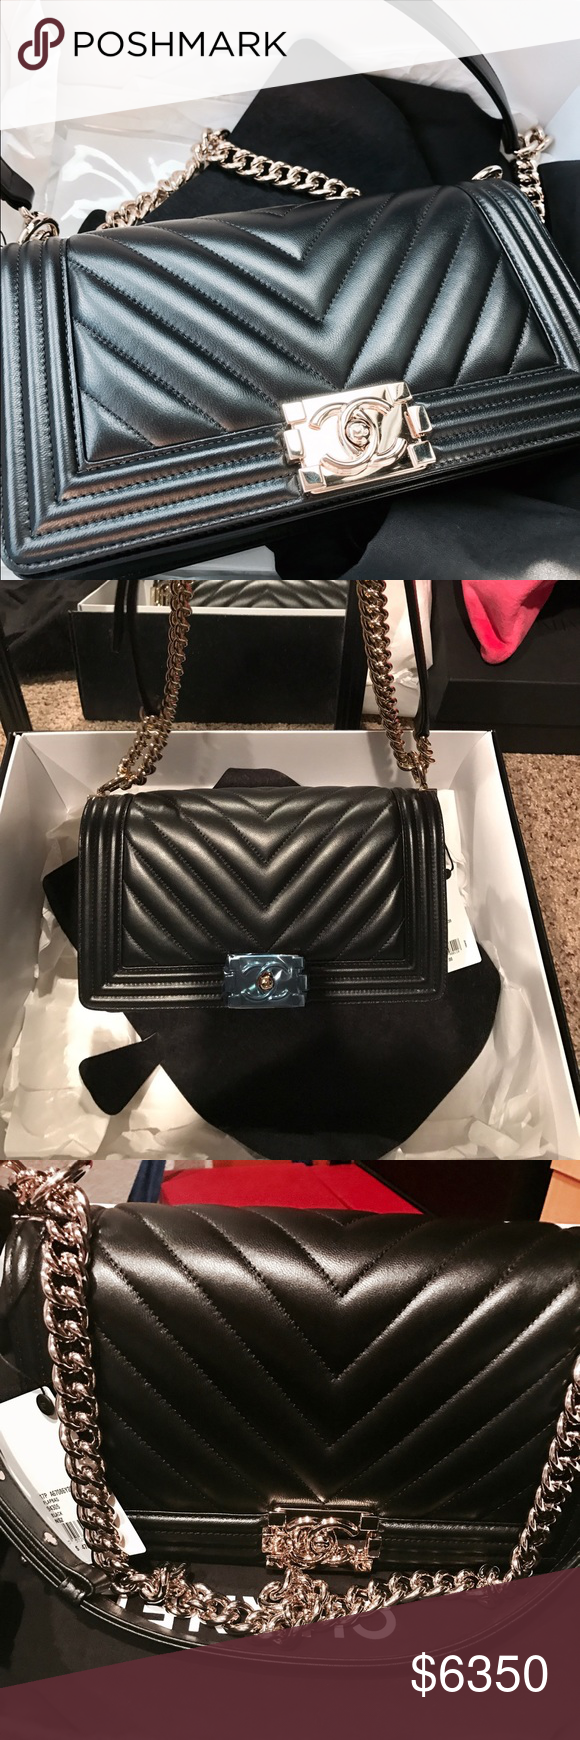 9d67c443082d Chanel boy bag chevron New Authentic Chanel Chevron Boy Bag Black with shiny  gold hardware. This is the old medium and it comes with box dust cover and  ...